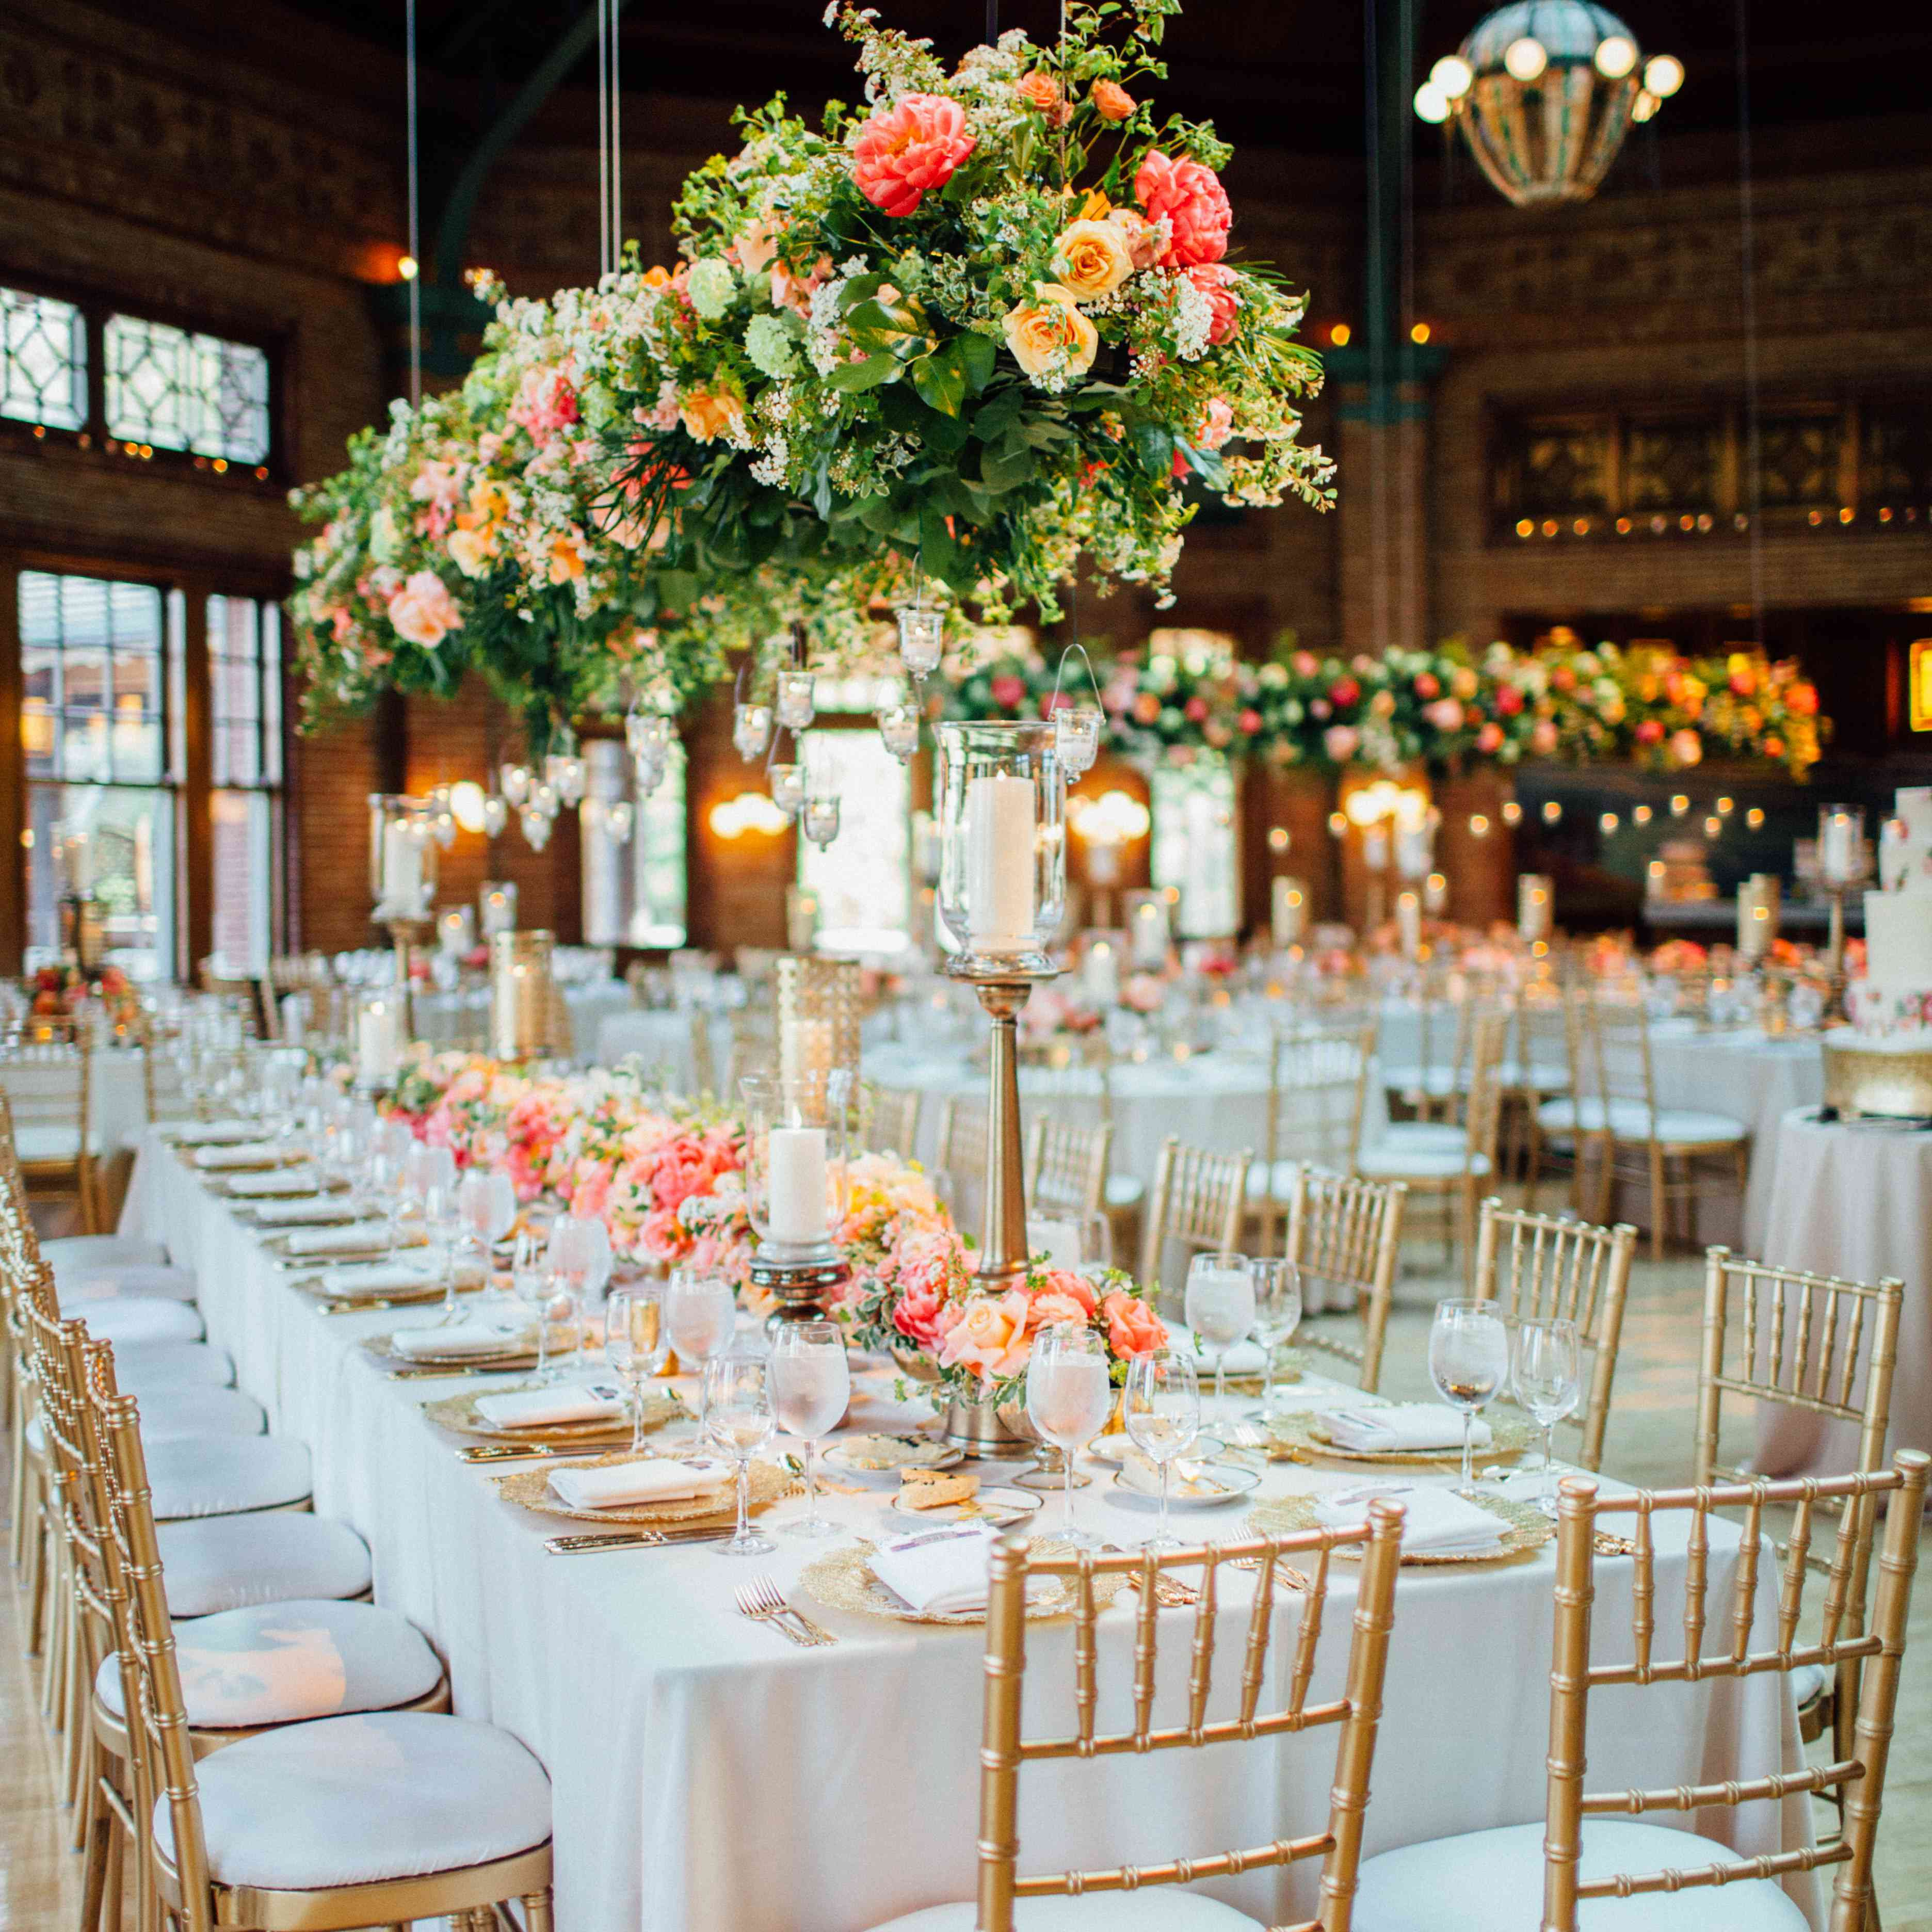 <p>Long Reception Table with Hanging Greenery</p><br><br>